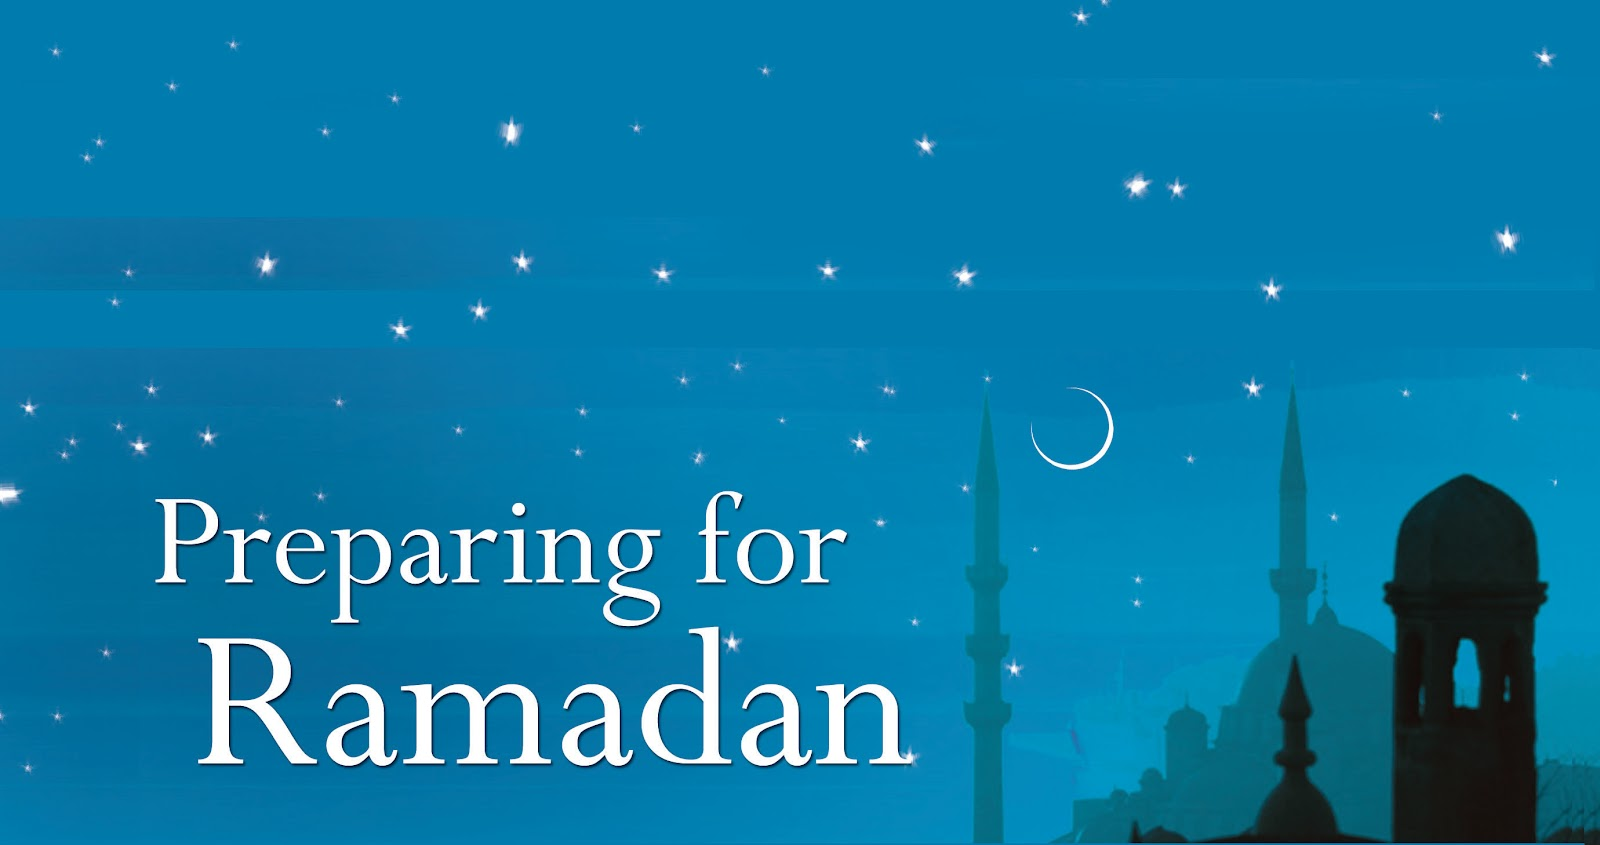 Things to Do for a Remarkable Ramadan